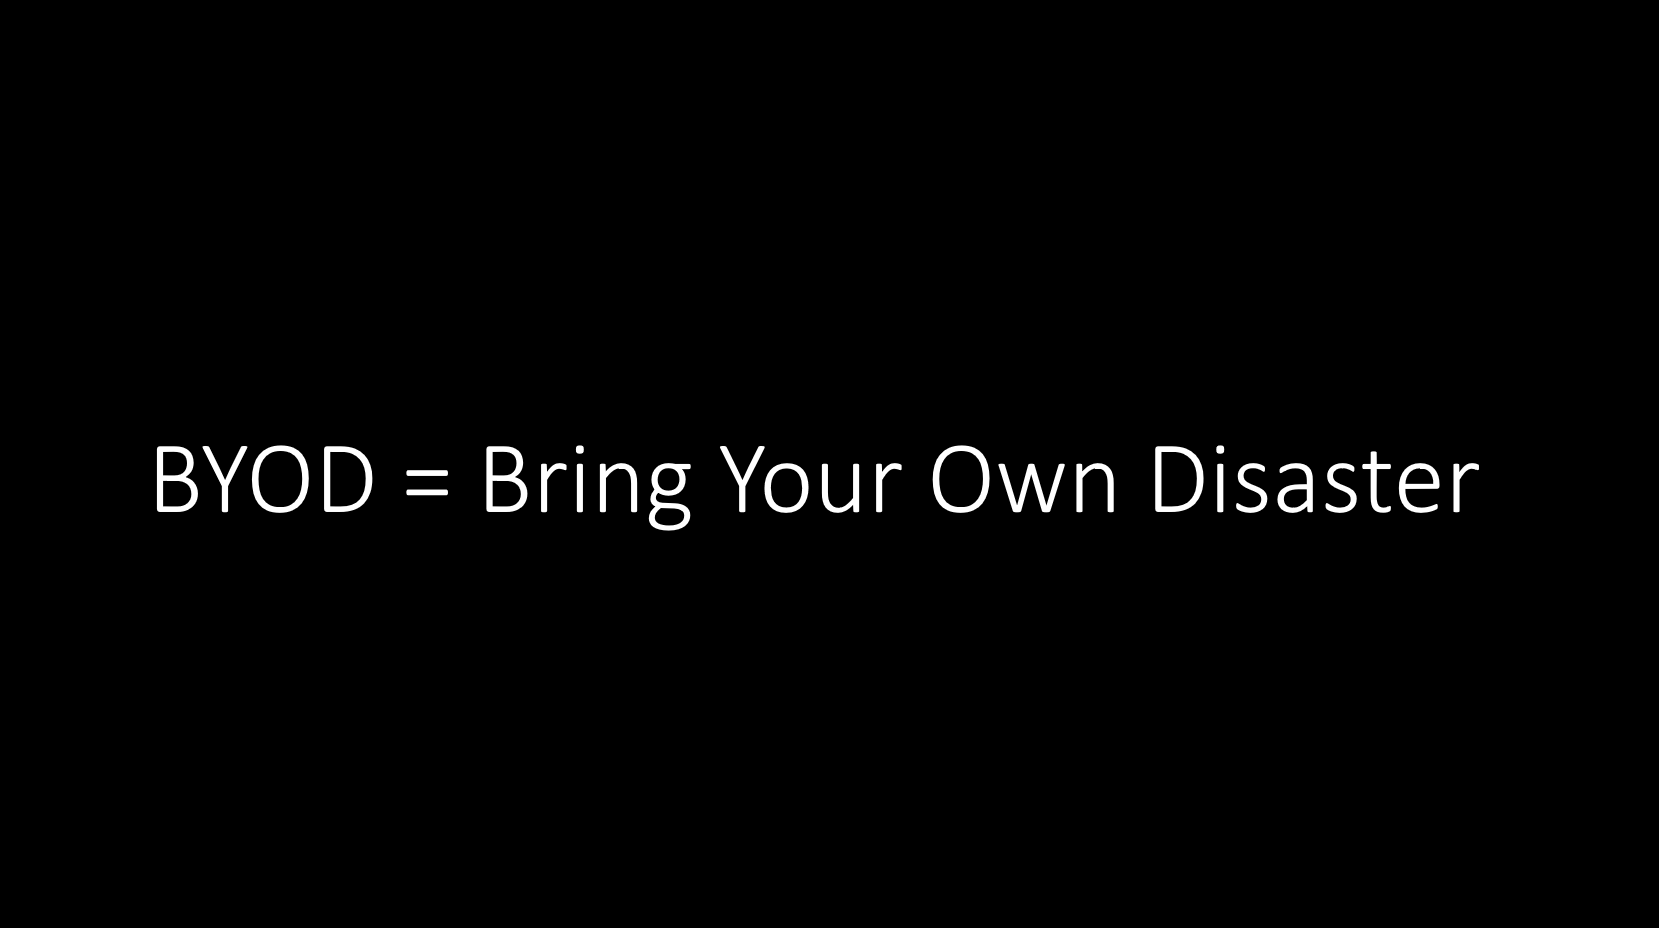 BYOD can stand for Bring Your Own Disaster